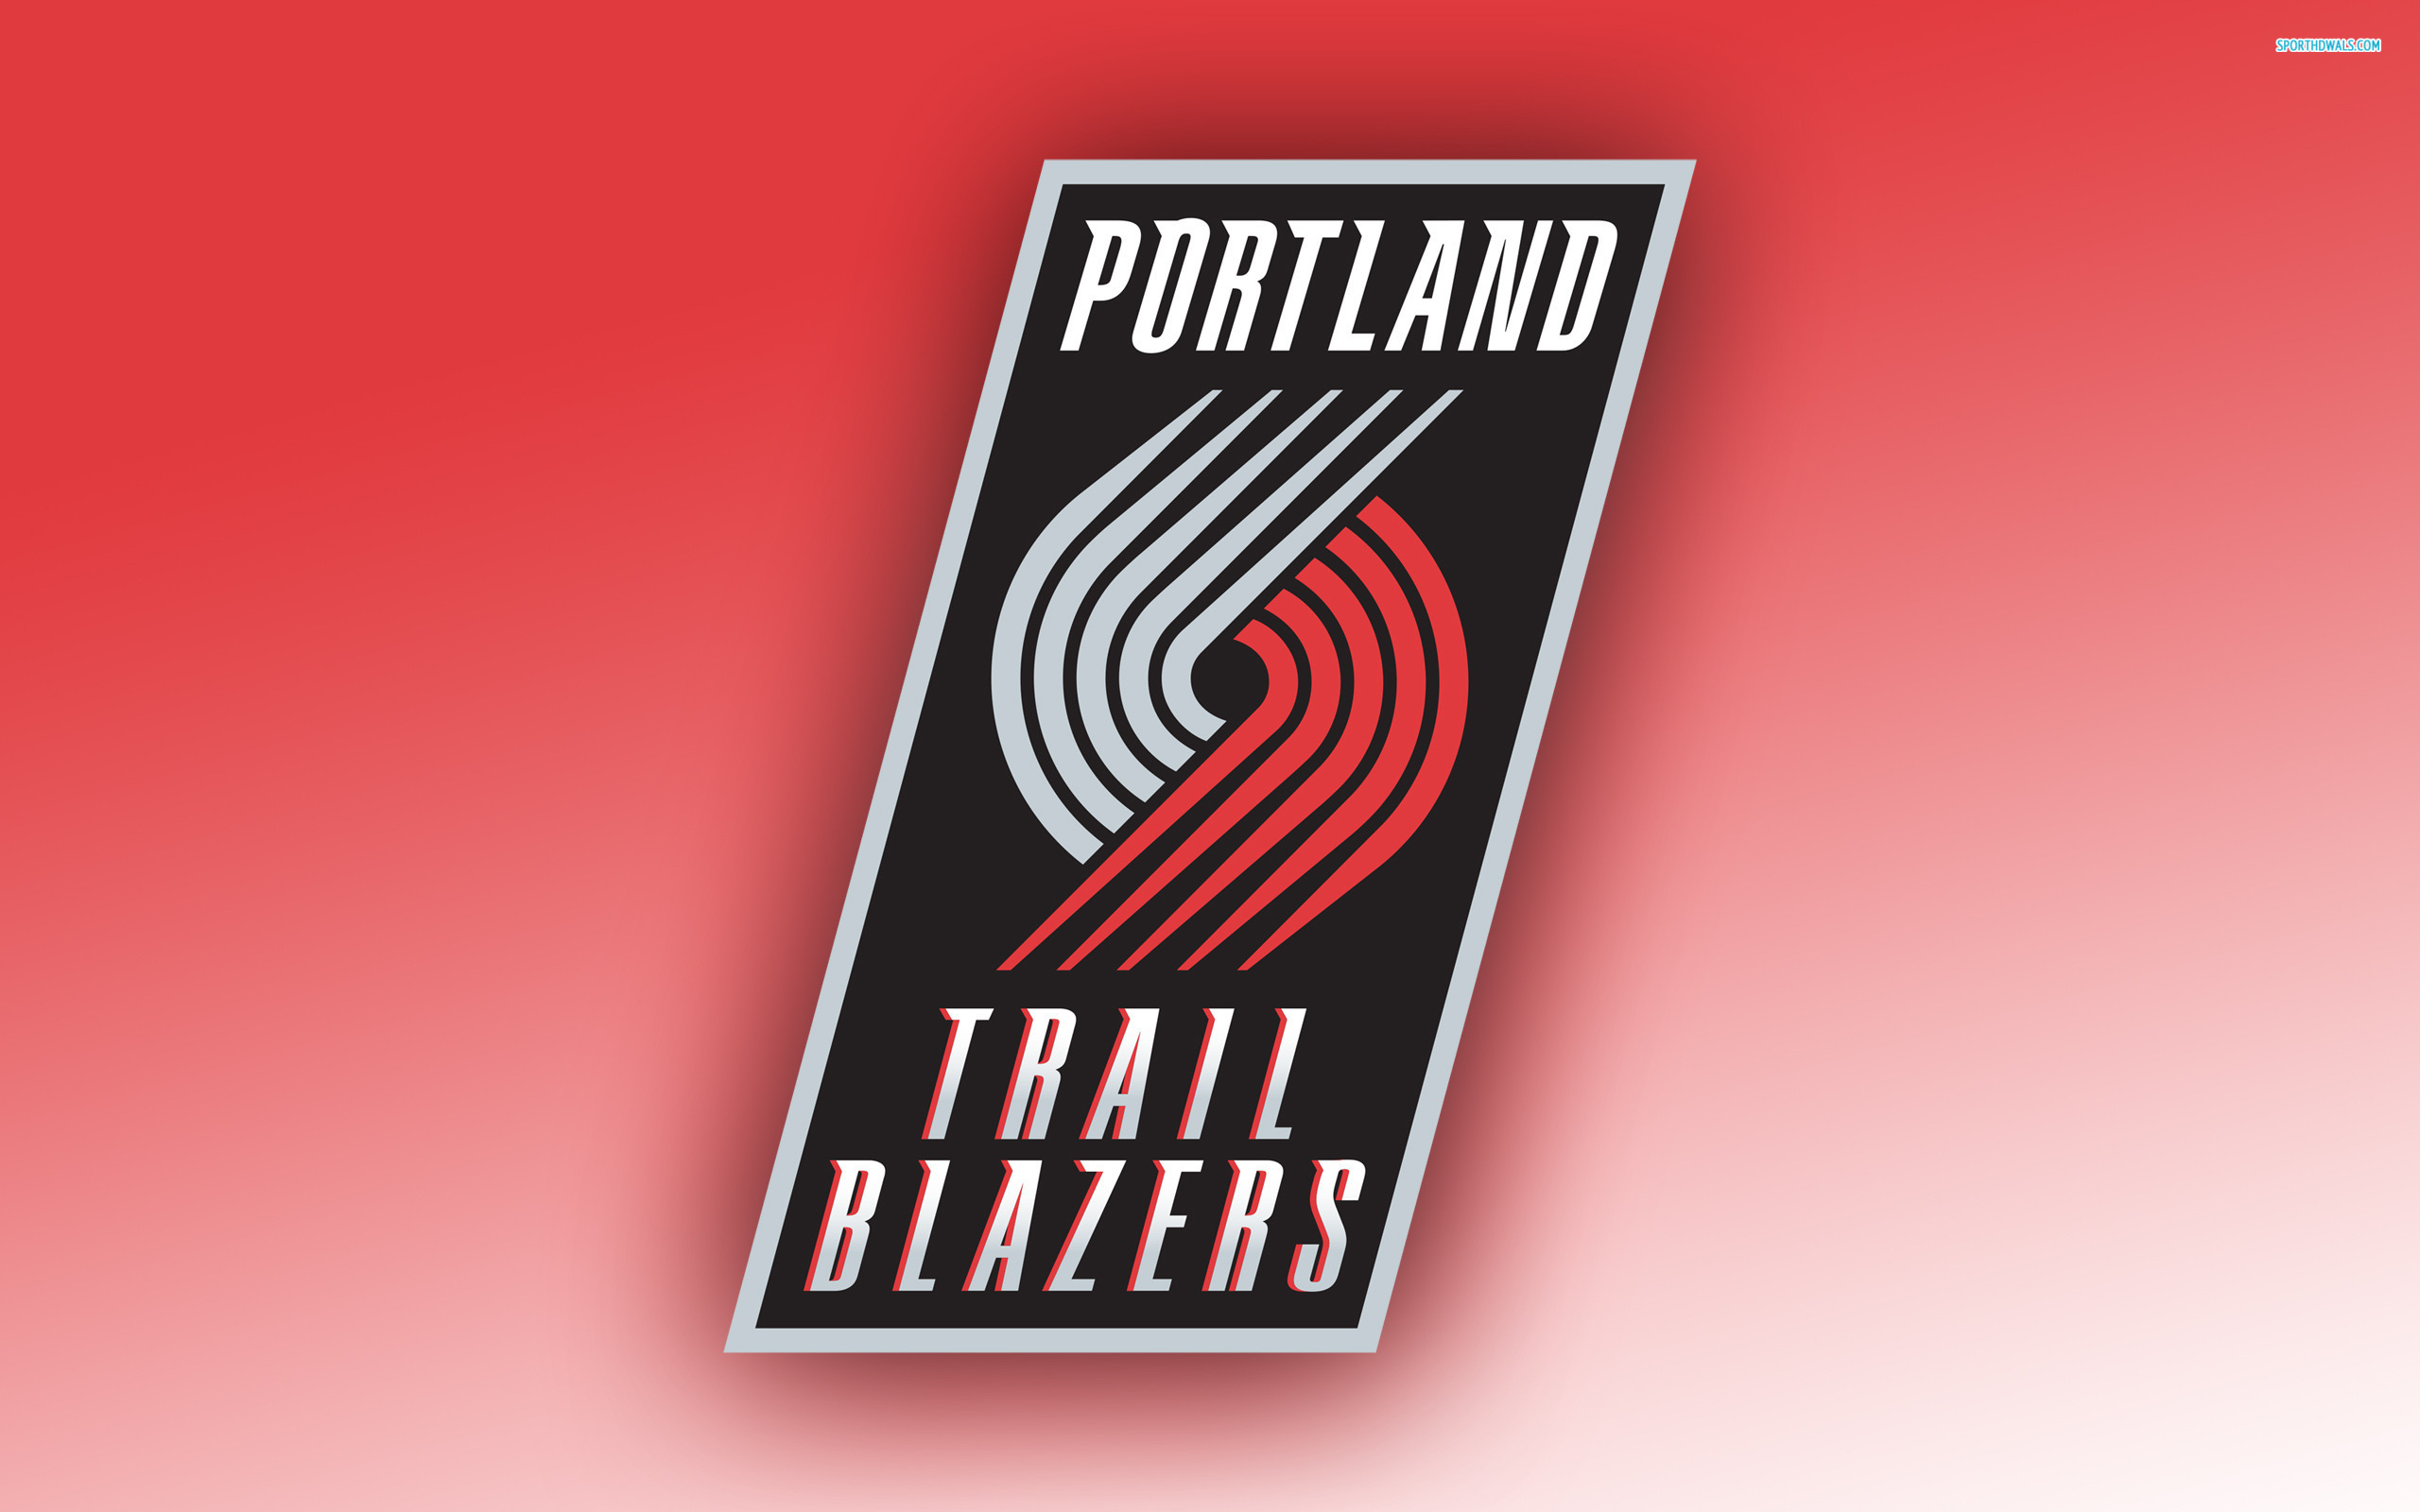 Portland Trail Blazers download wallpaper